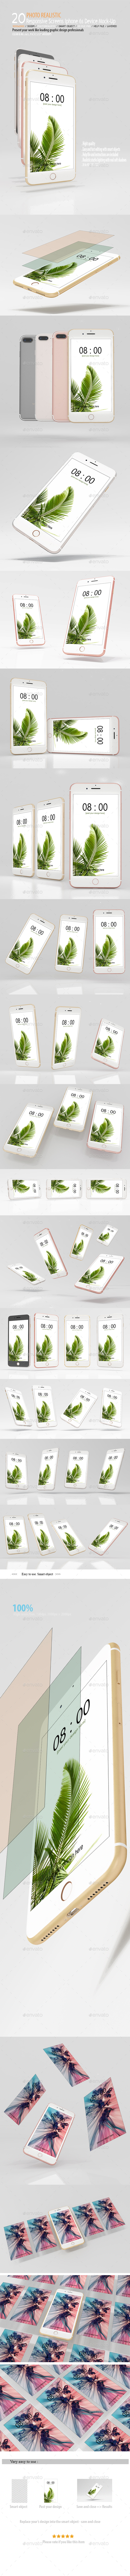 Responsive Screens Phone 6s Device Mock-Up - Mobile Displays